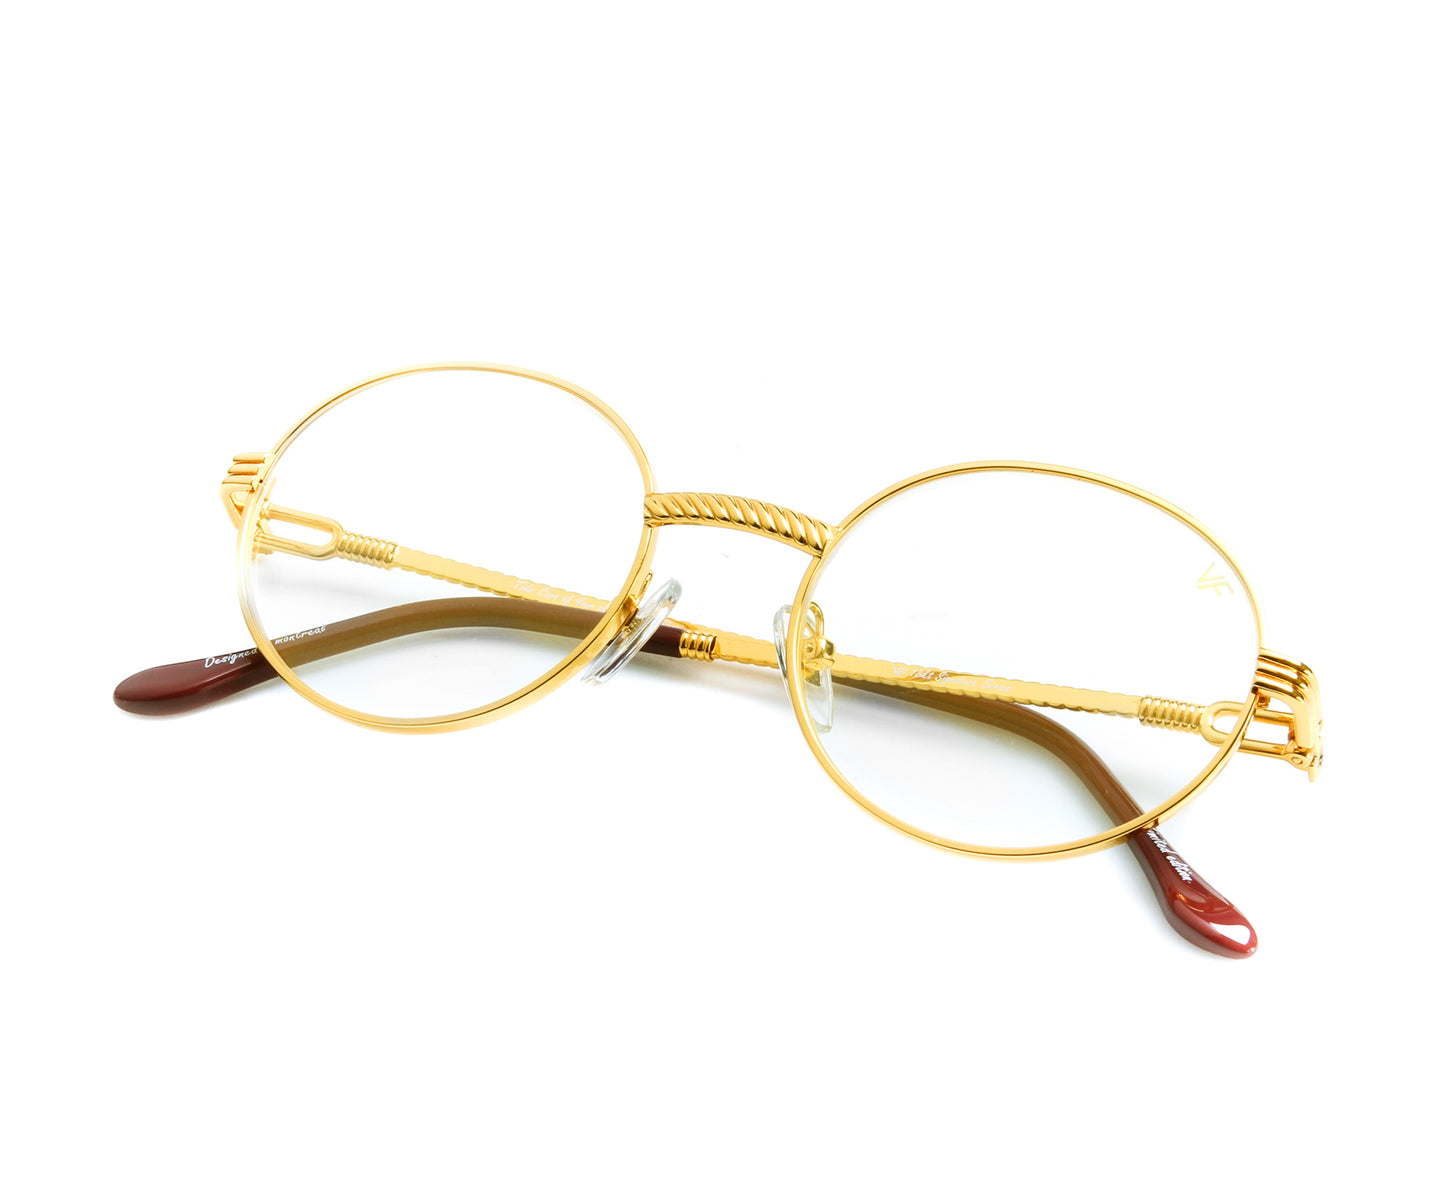 VF 508 18KT Gold (Clear), VF by Vintage Frames , glasses frames, eyeglasses online, eyeglass frames, mens glasses, womens glasses, buy glasses online, designer eyeglasses, vintage sunglasses, retro sunglasses, vintage glasses, sunglass, eyeglass, glasses, lens, vintage frames company, vf